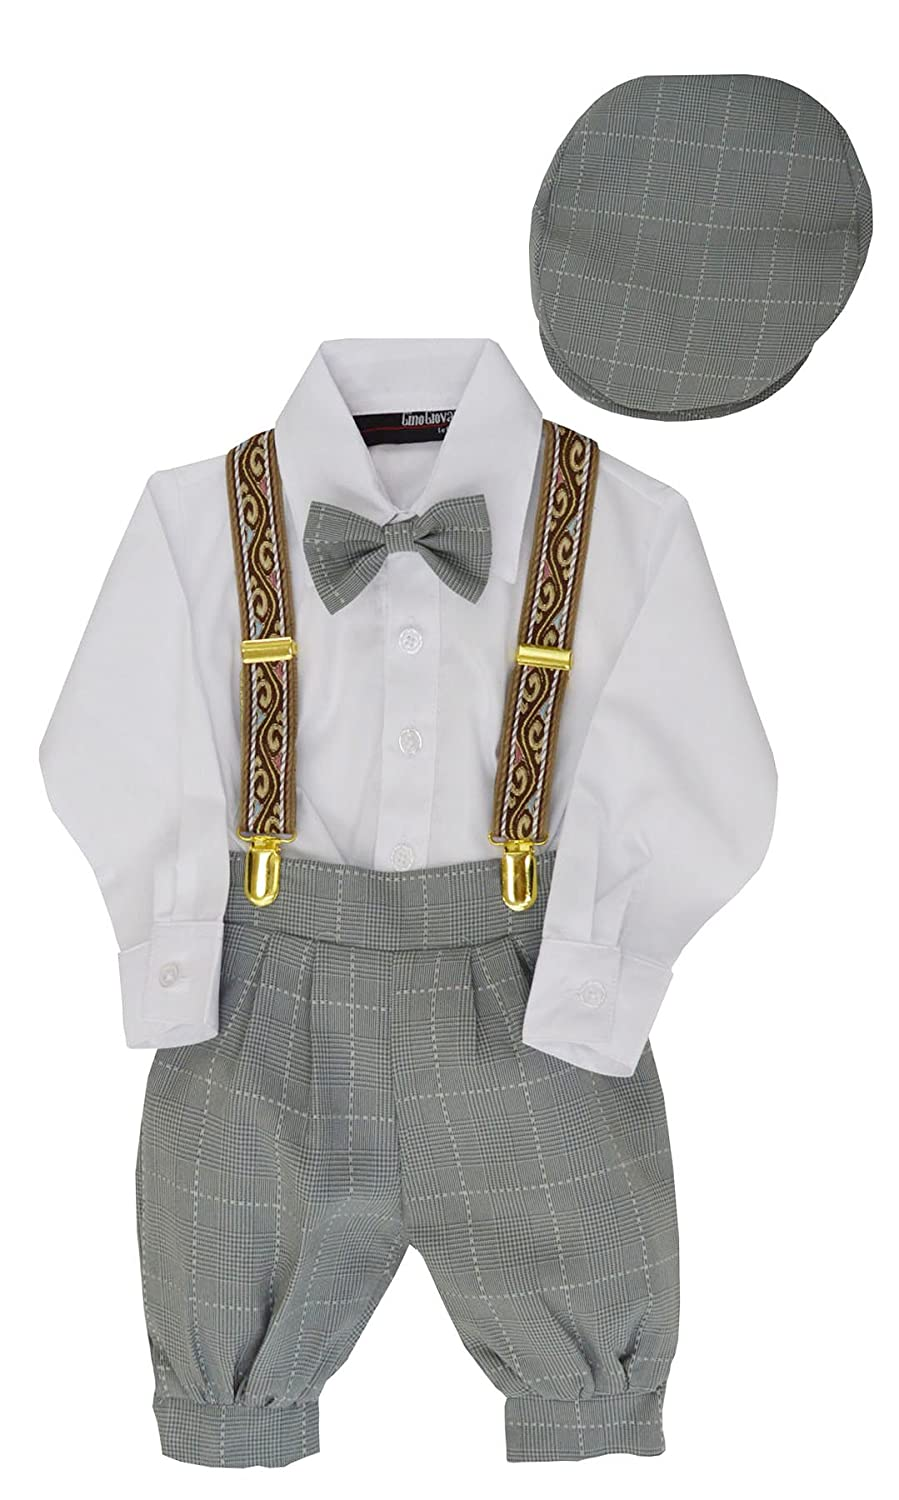 1940s Children's Clothing: Girls, Boys, Baby, Toddler Gino Giovanni Boys Vintage Style Knickers Outfit Suspenders Set $29.99 AT vintagedancer.com